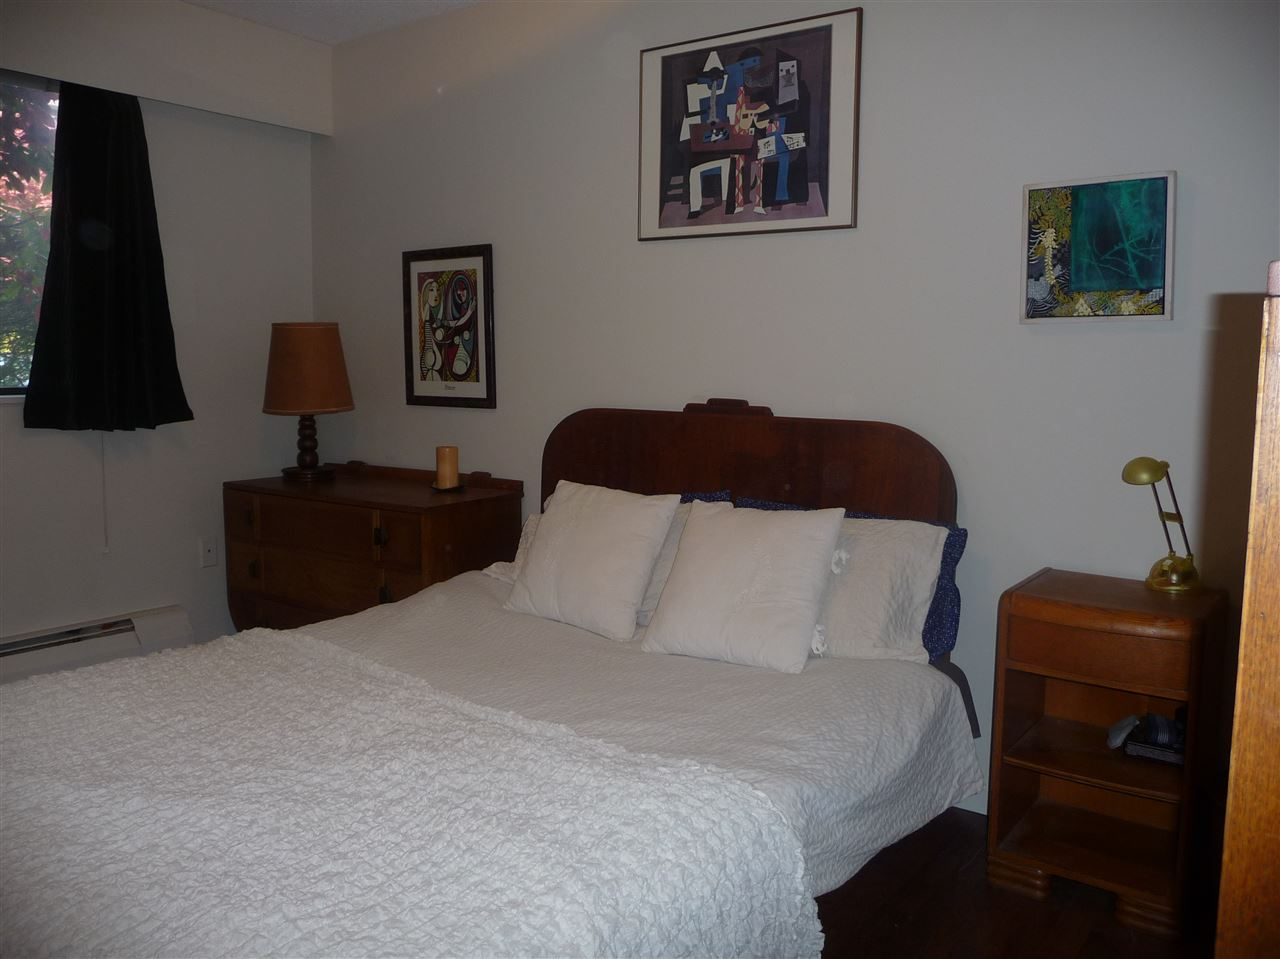 Photo 9: 103 2910 ONTARIO STREET in Vancouver: Mount Pleasant VE Condo for sale (Vancouver East)  : MLS® # R2058838